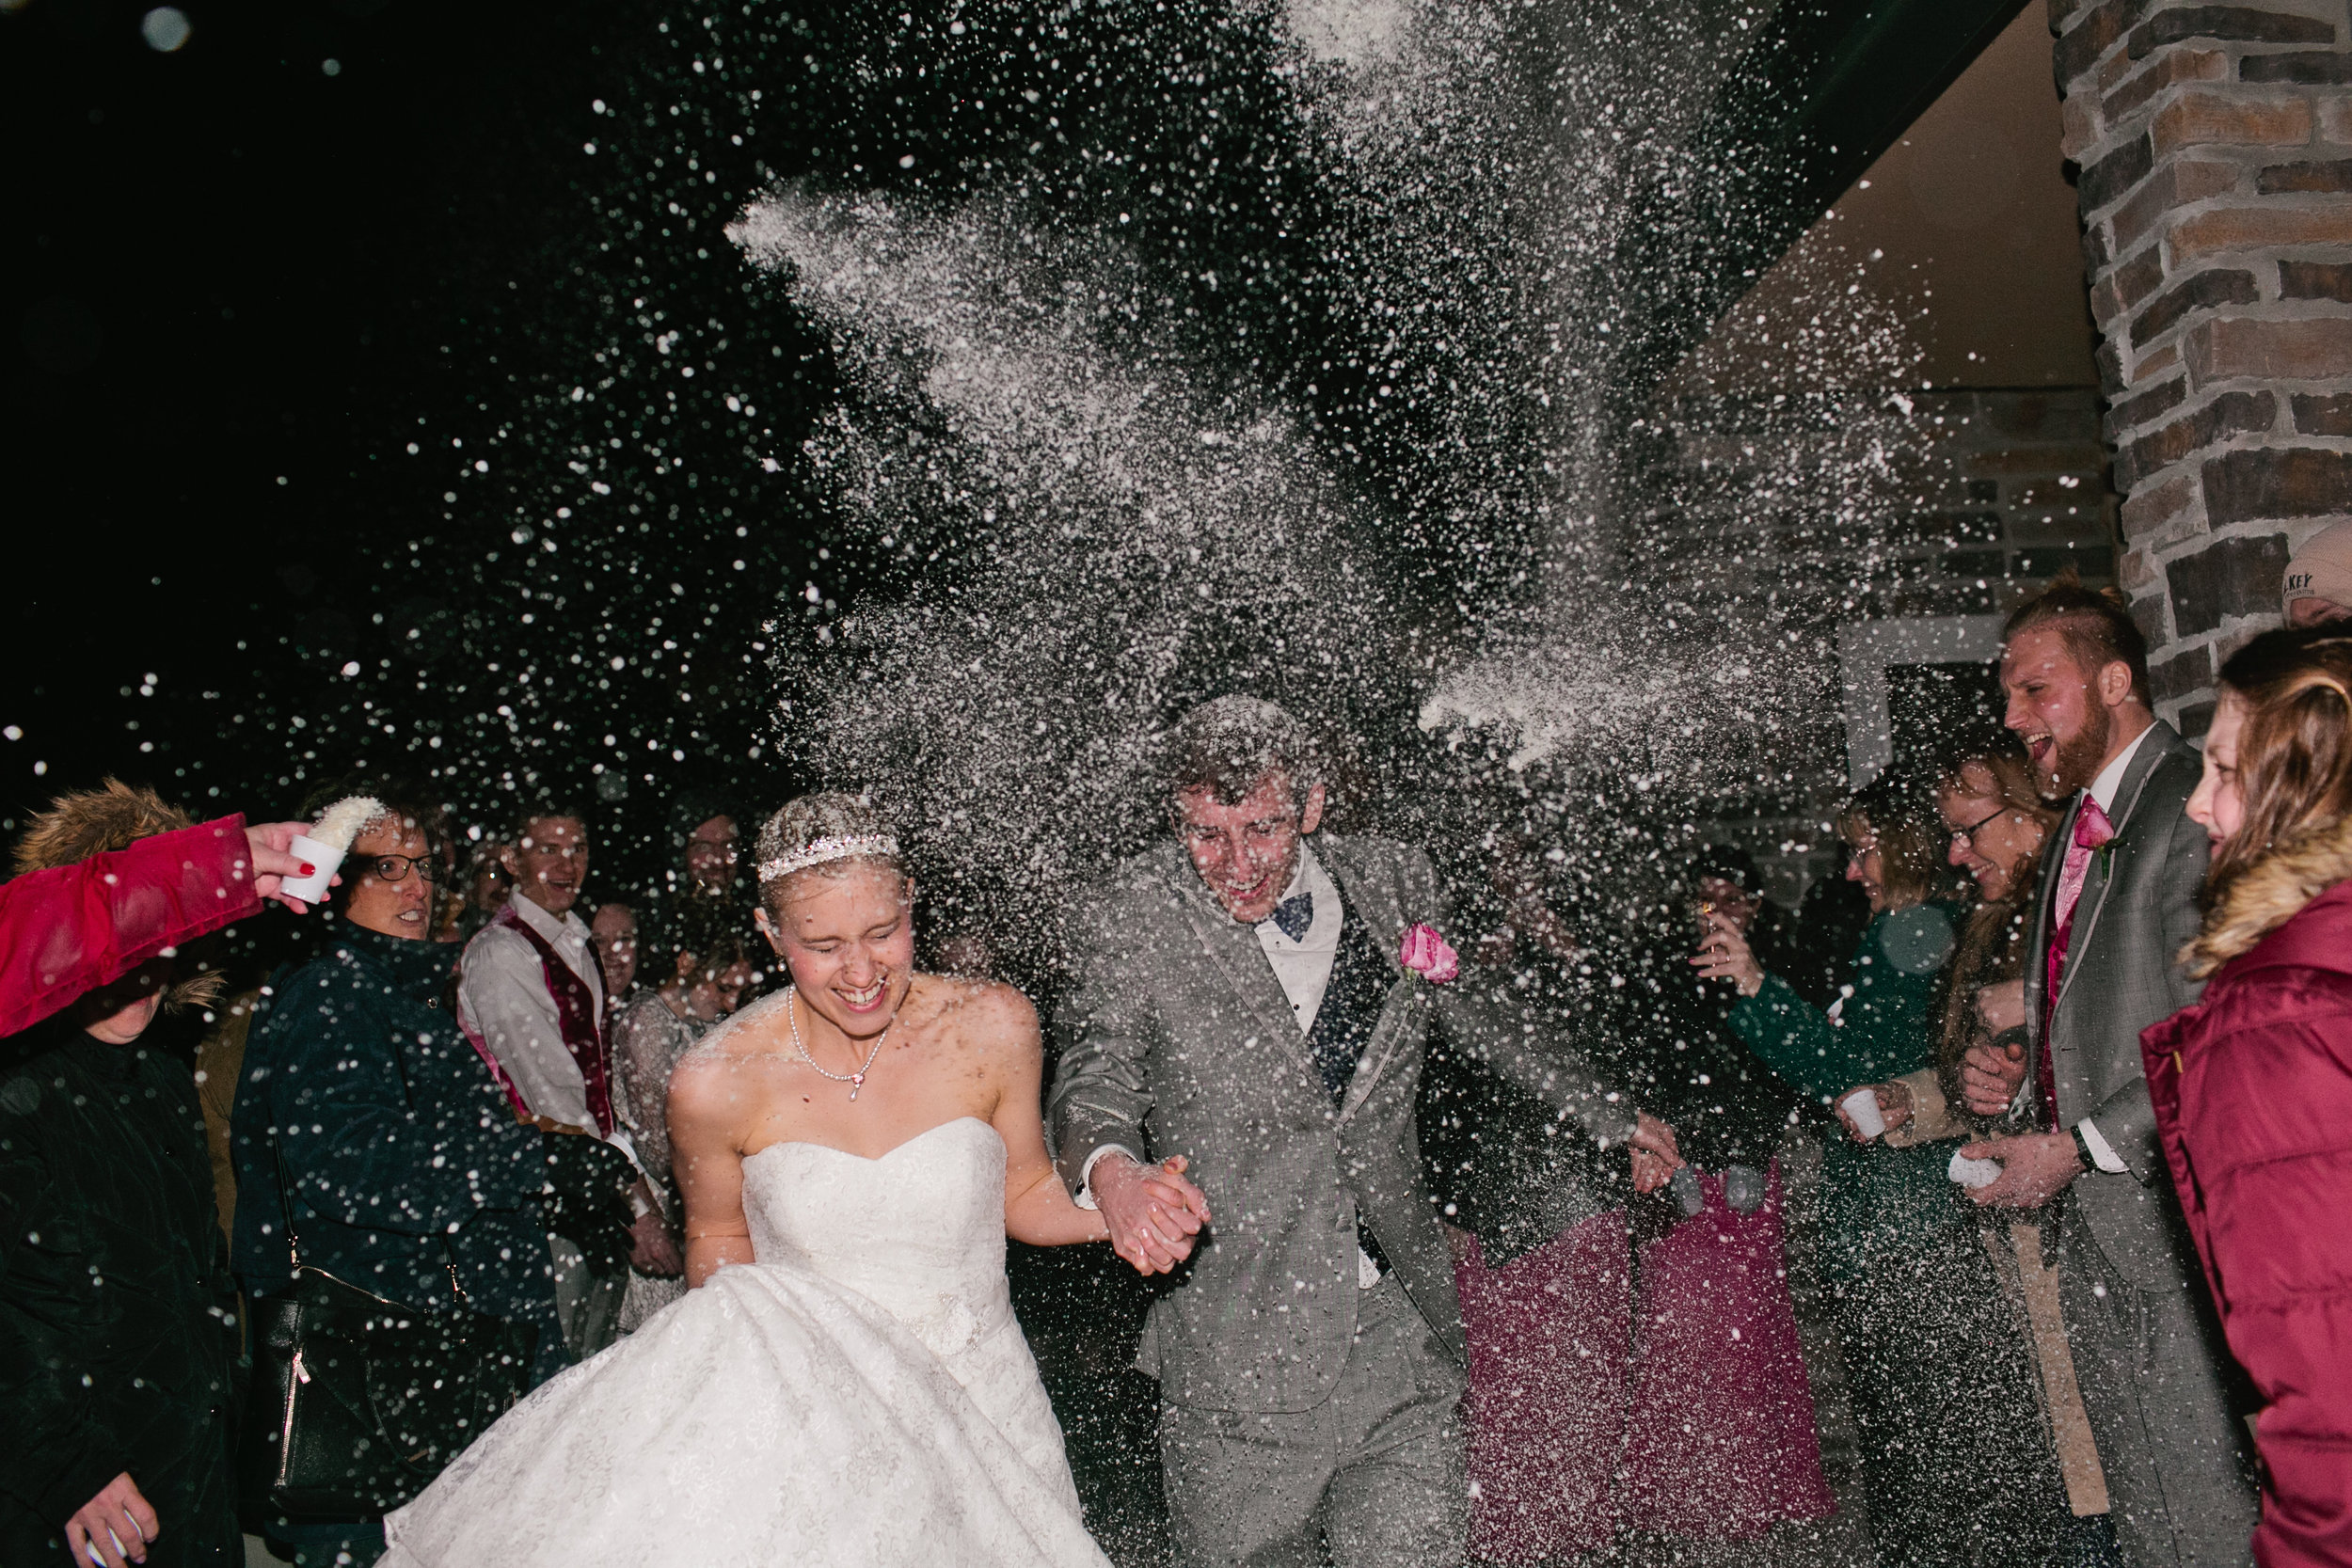 photos-of-throwing-potato-flakes-at-wedding